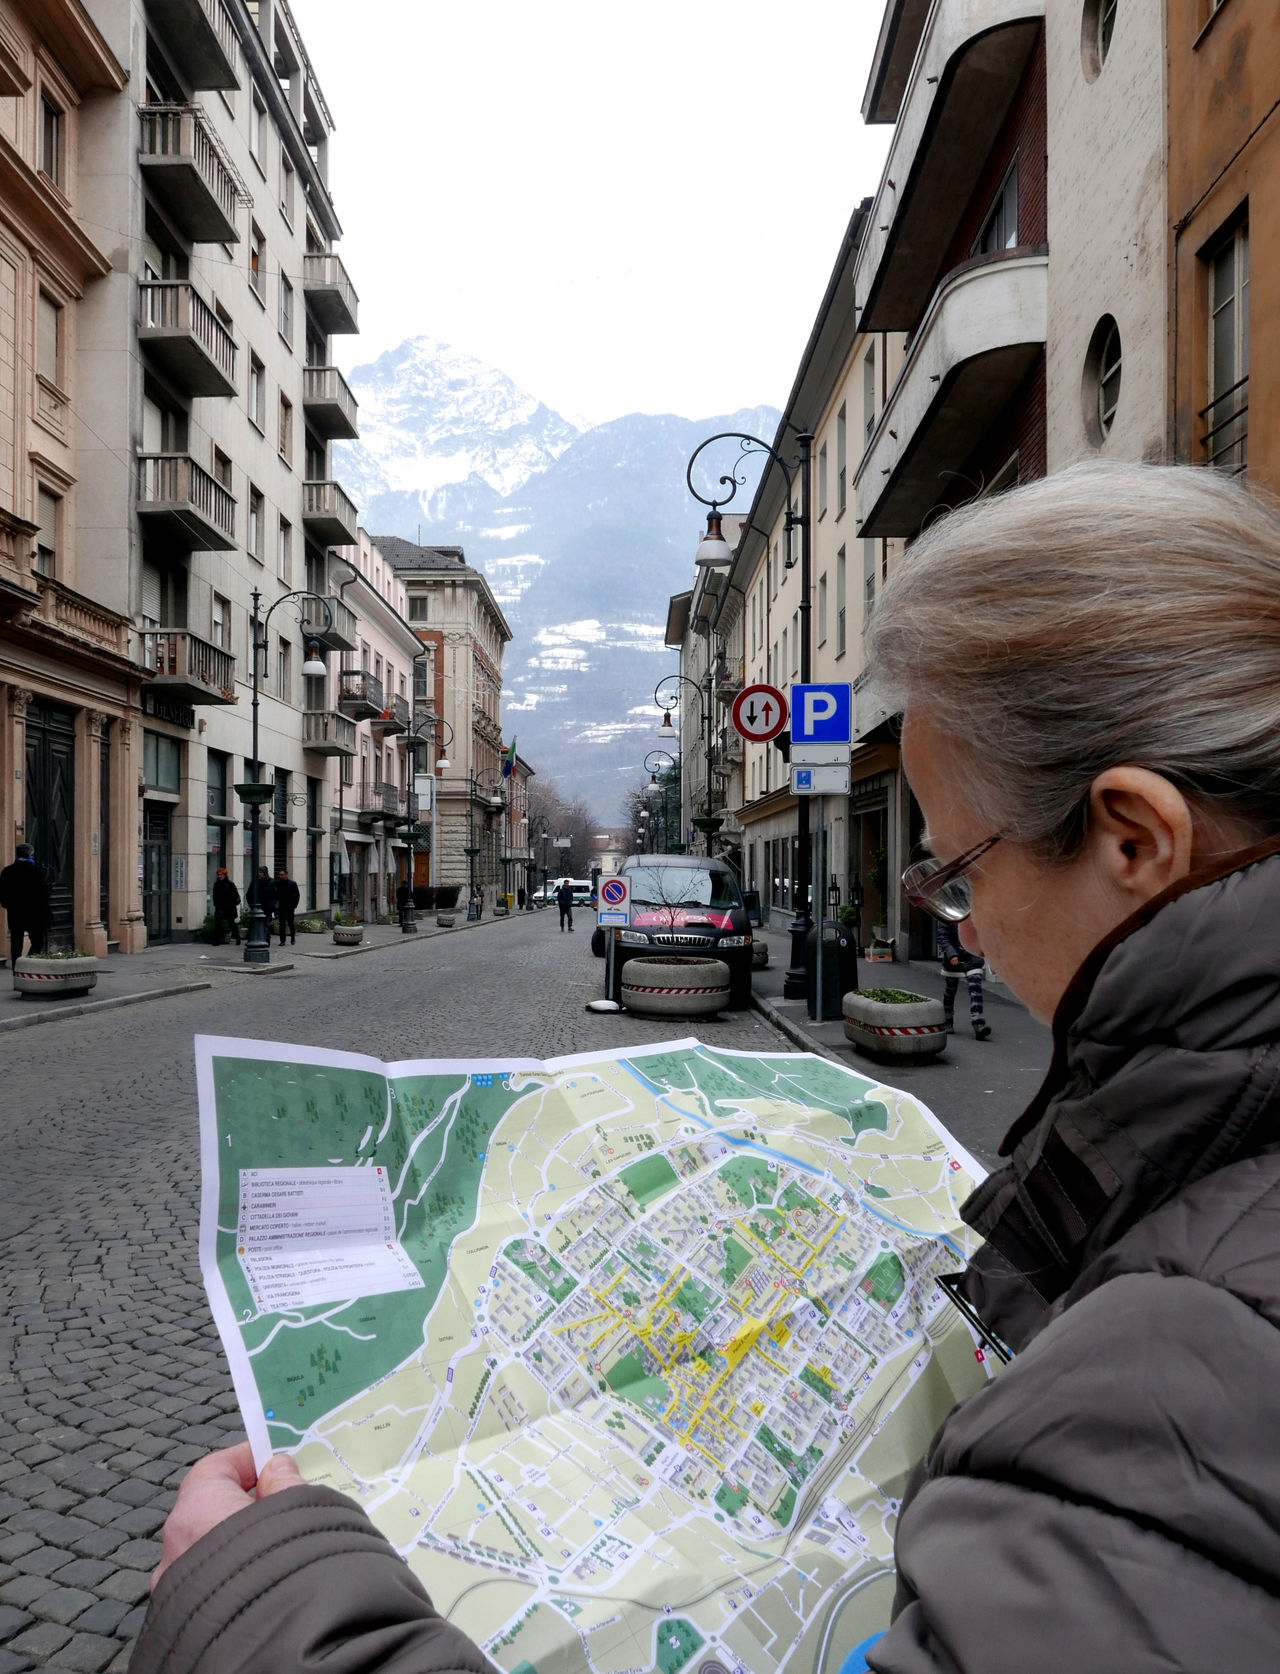 Architecture Building Exterior Built Structure City City Life City Street Leisure Activity Perspective Street Woman Tourist Map City Map Italy Aosta Tourism Travel